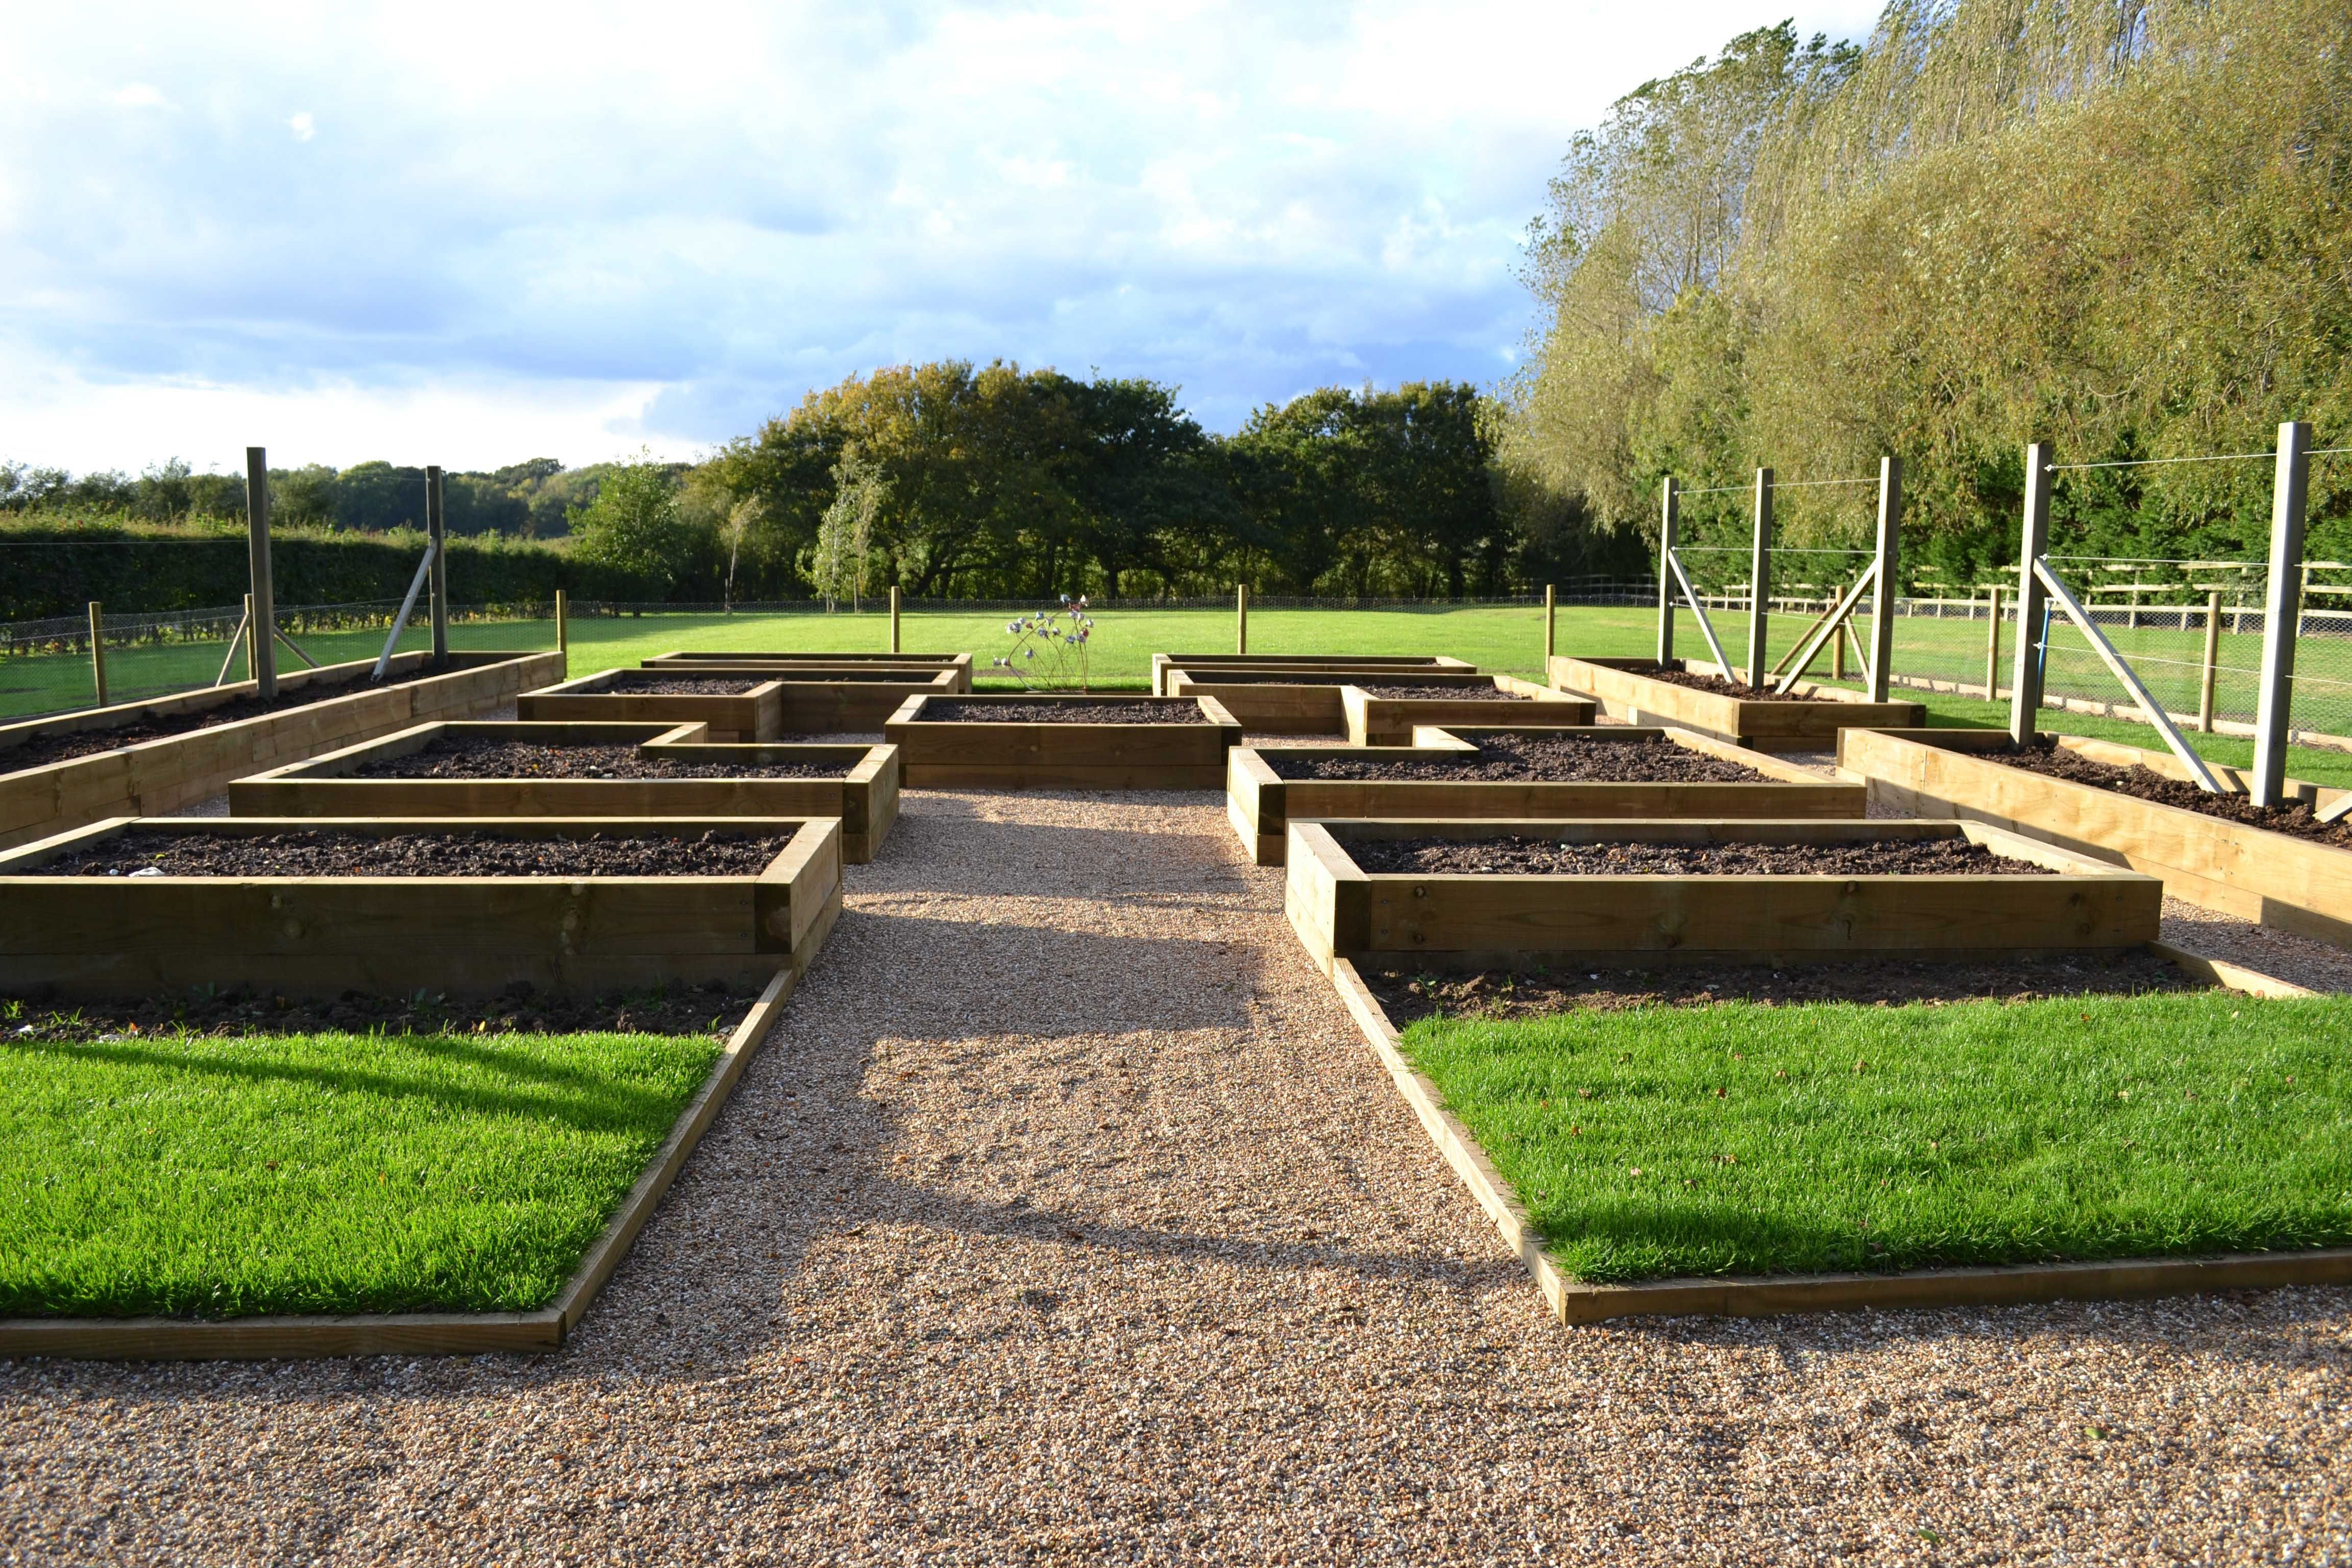 Potager – definition The traditional kitchen garden also known